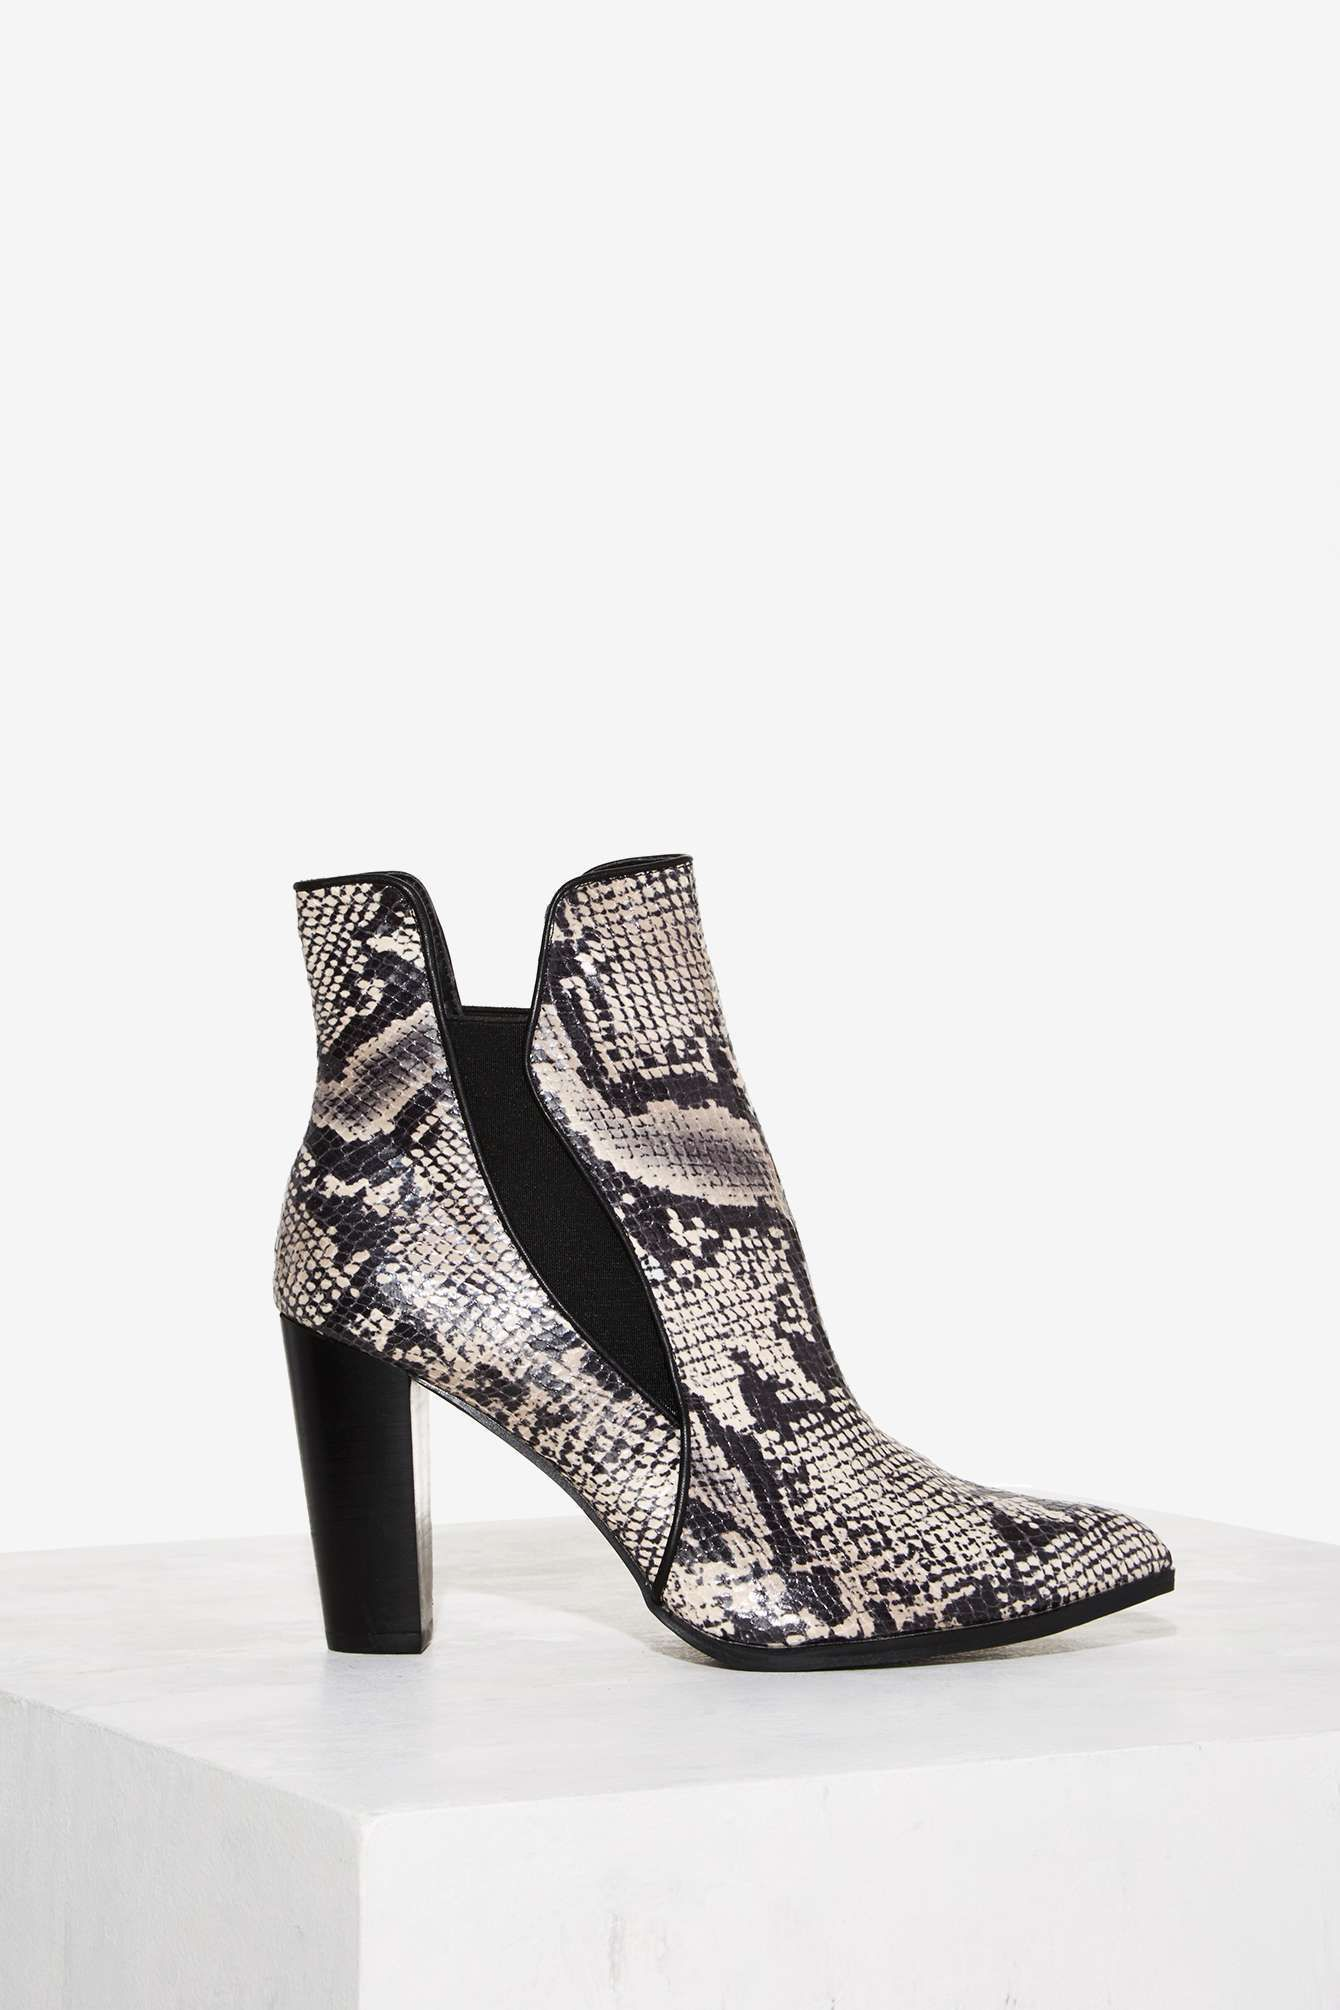 bde888aba131 Have Your Snake Textured Bootie